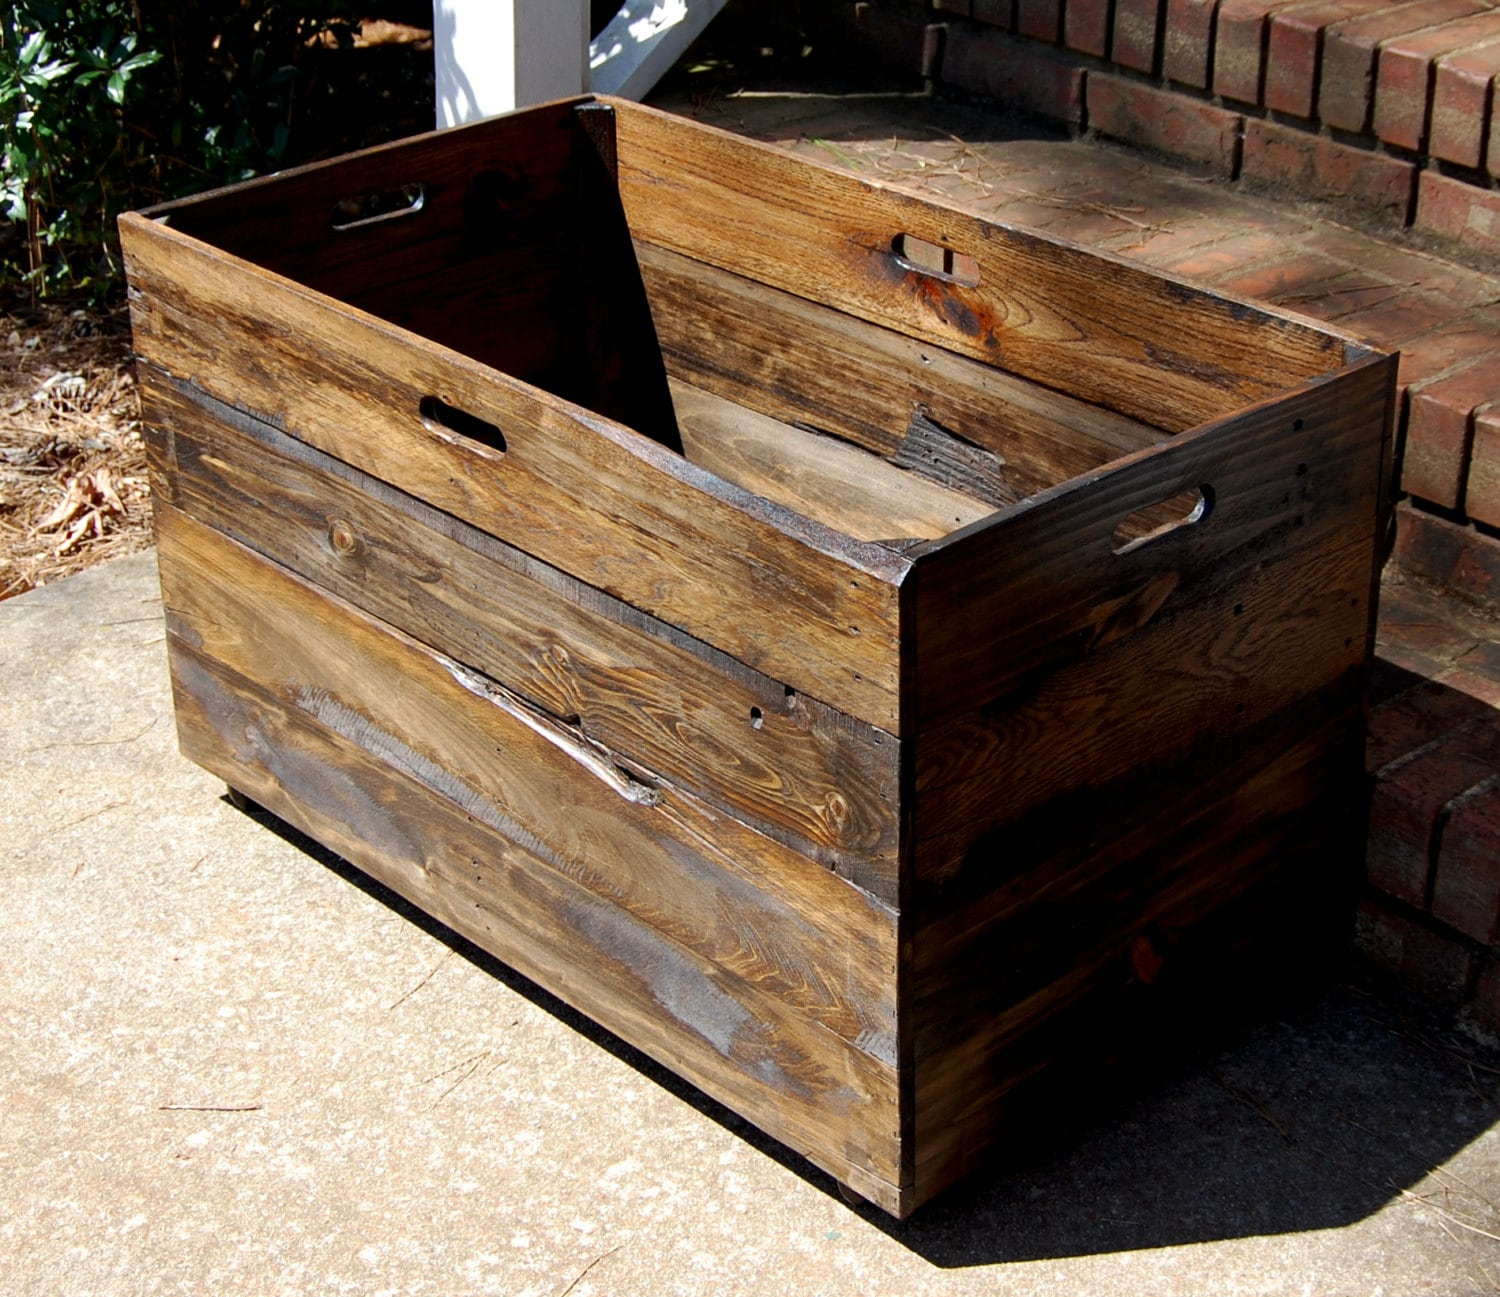 🔎zoom - Oversized Wooden Crate From Reclaimed Wood/ Toy Chest/ Large